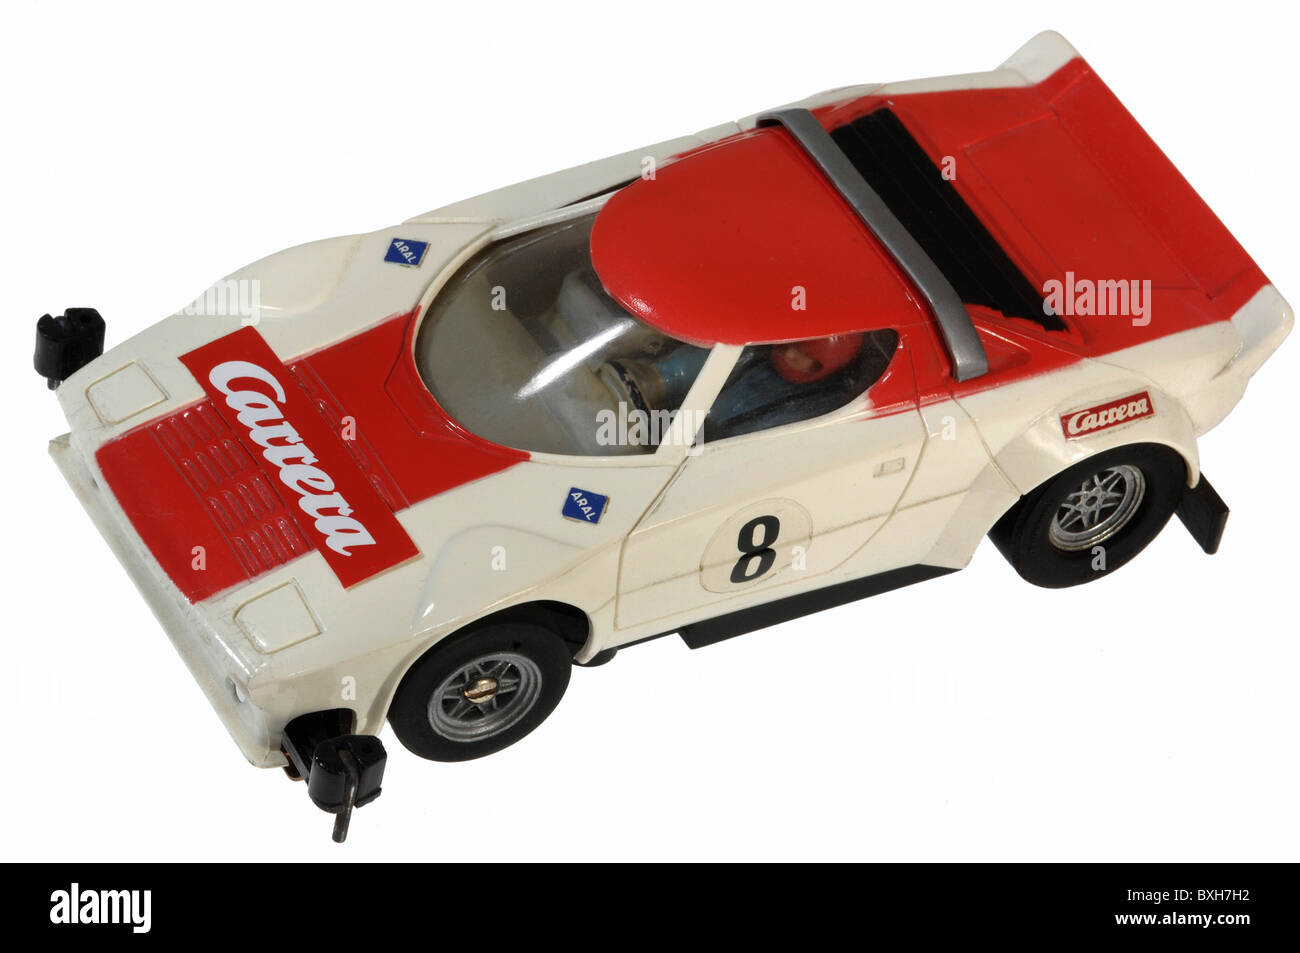 toys, toy cars, Carrera motor-racing circuit, Porsche racing car, Germany, circa 1978, Additional-Rights-Clearences - Stock Image